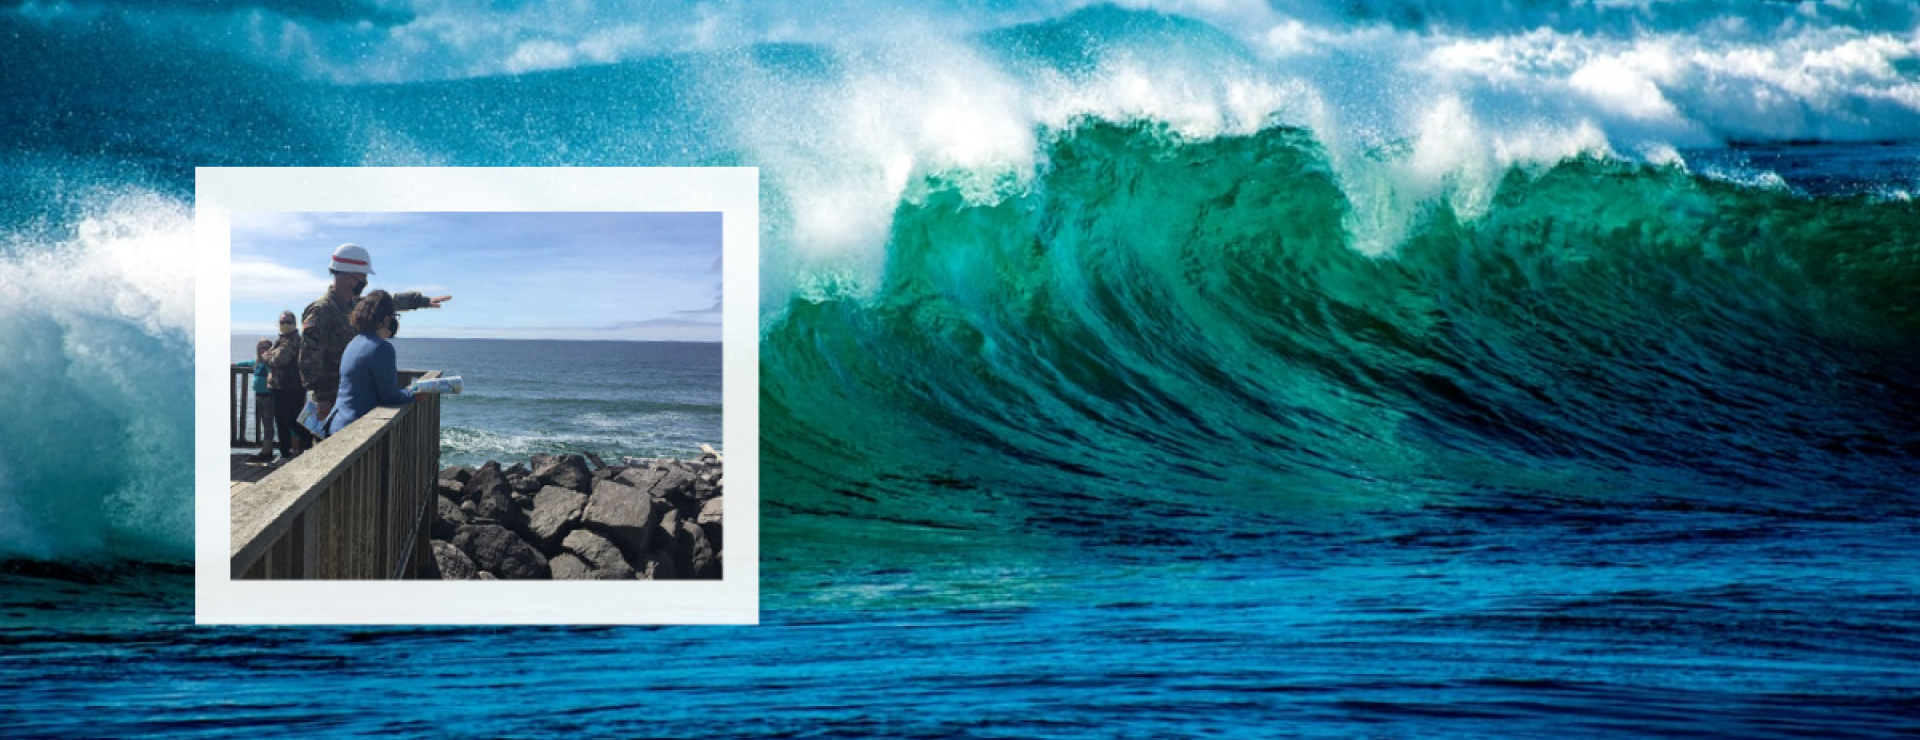 Photo of wave with inset photo of Congresswoman Suzanne Bonamici at South Jetty on North Oregon coast